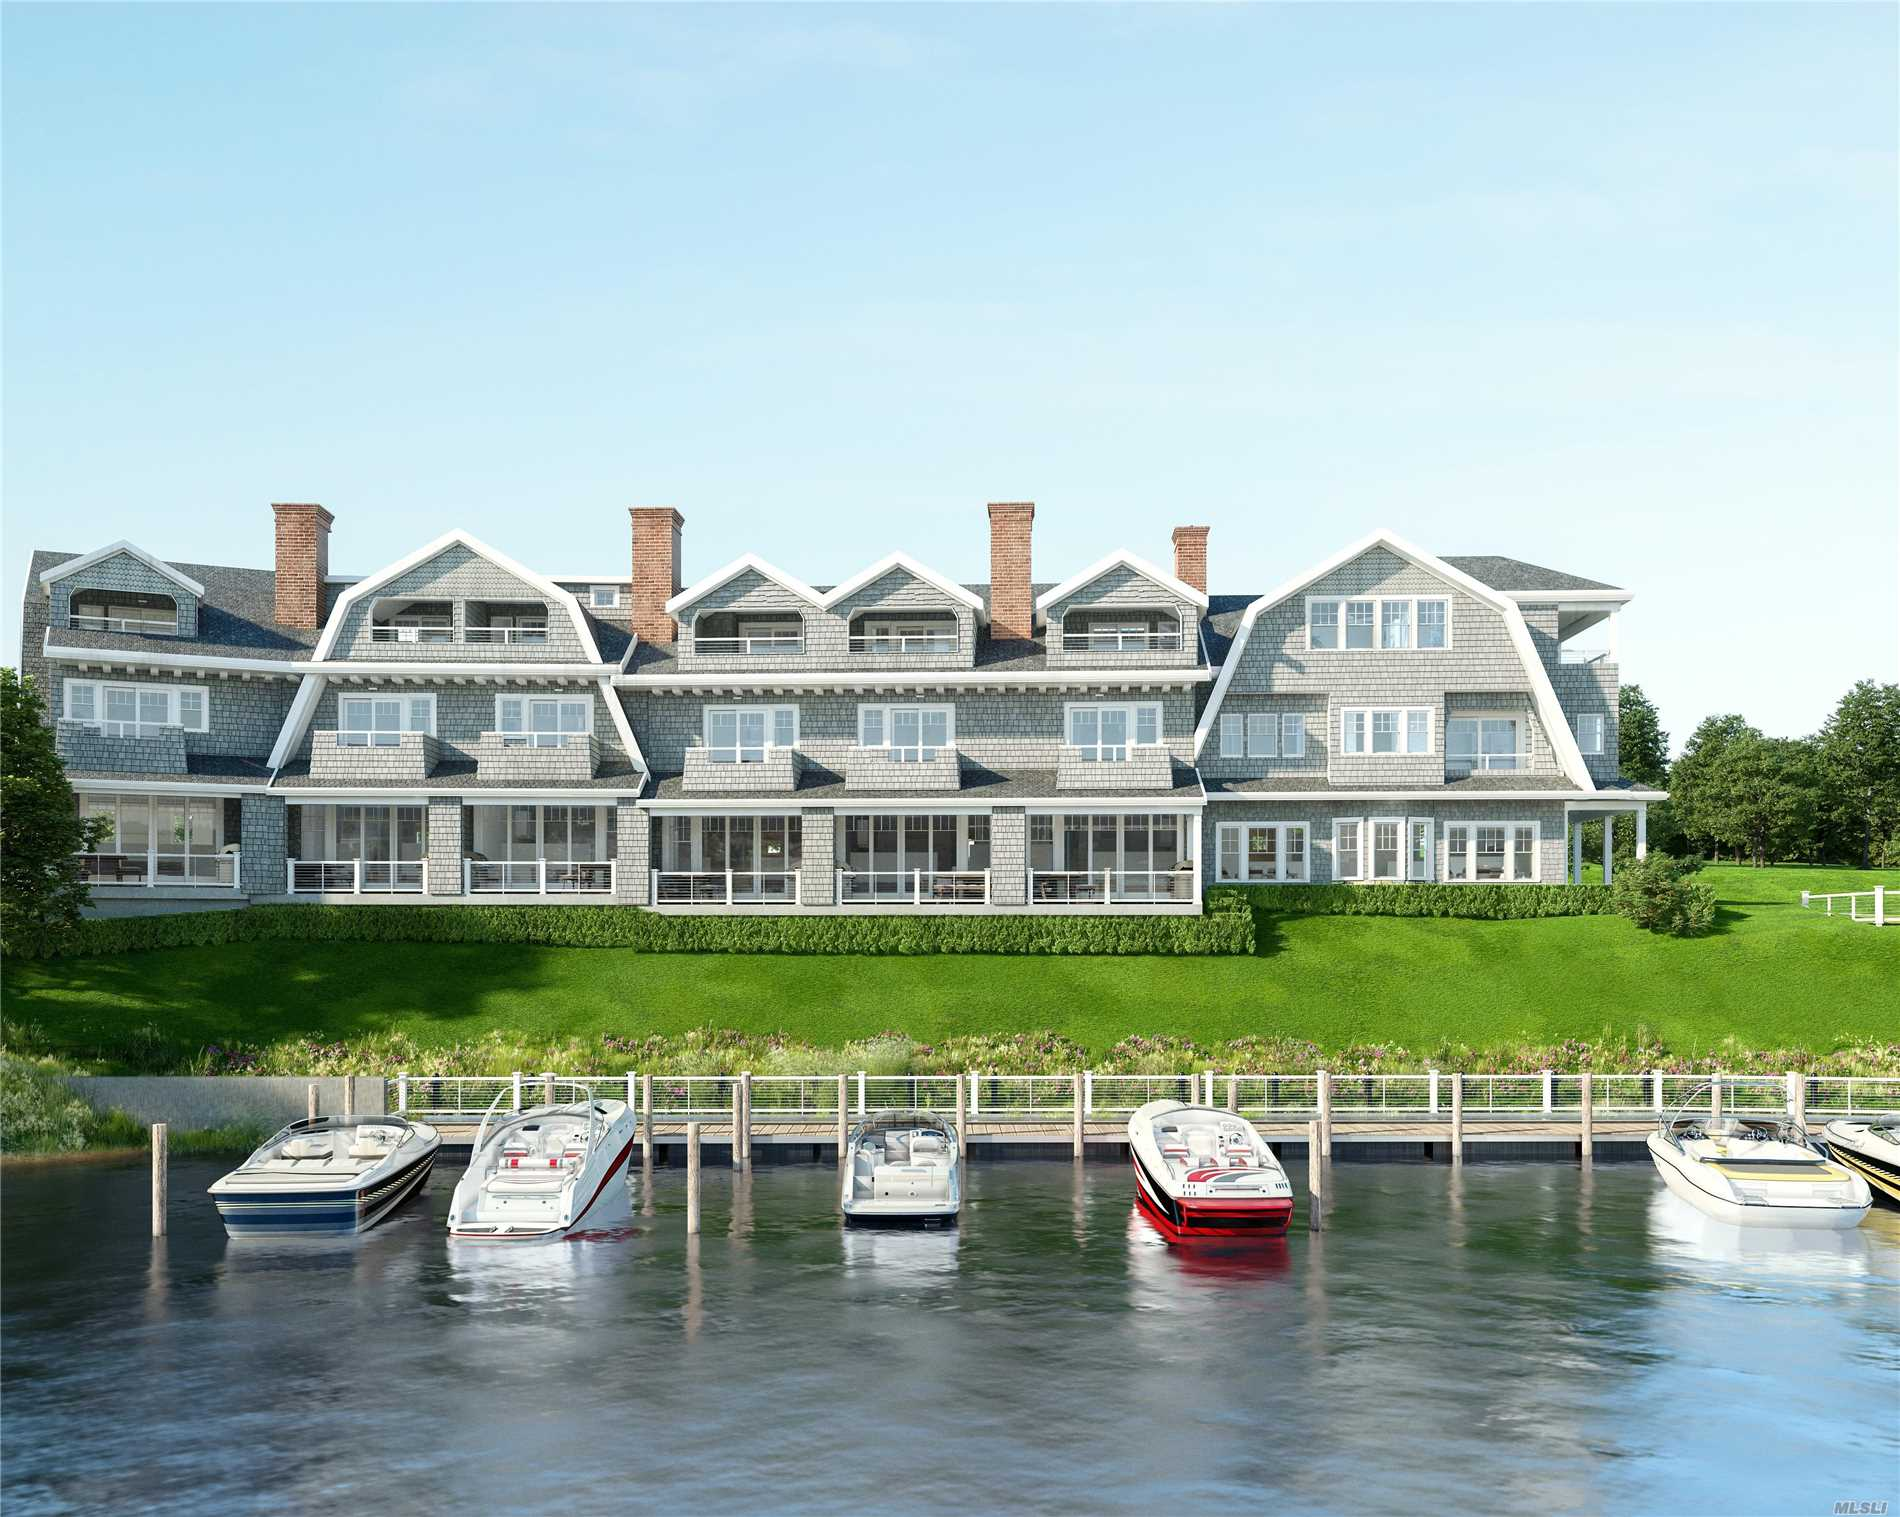 Property for sale at 29 Old Boathouse Lane # 405, Hampton Bays NY 11946, Hampton Bays,  New York 11946